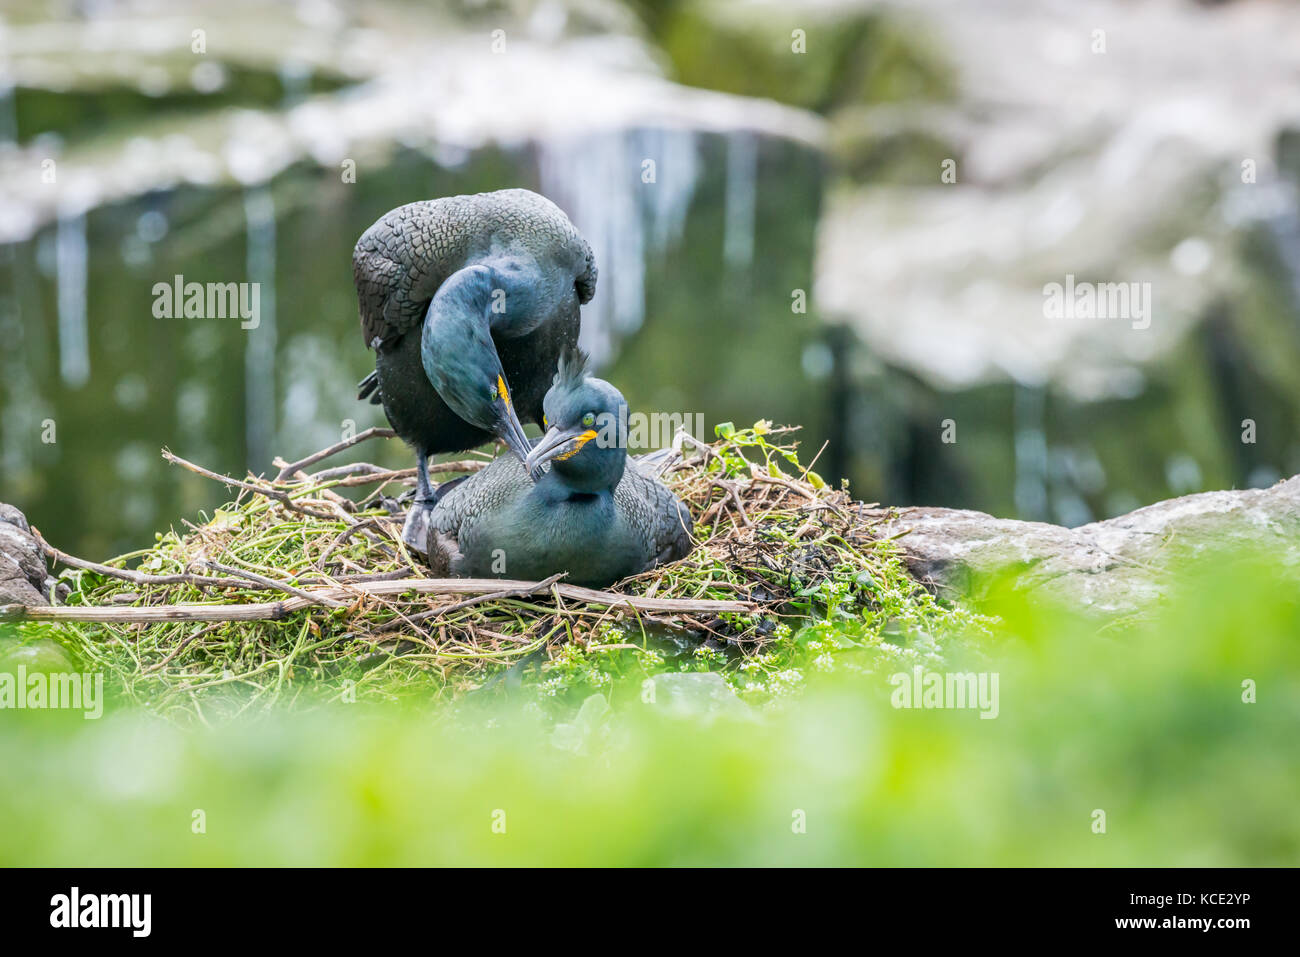 Two shags mating on their clifftop nest in the Farne Islands, May. Stock Photo